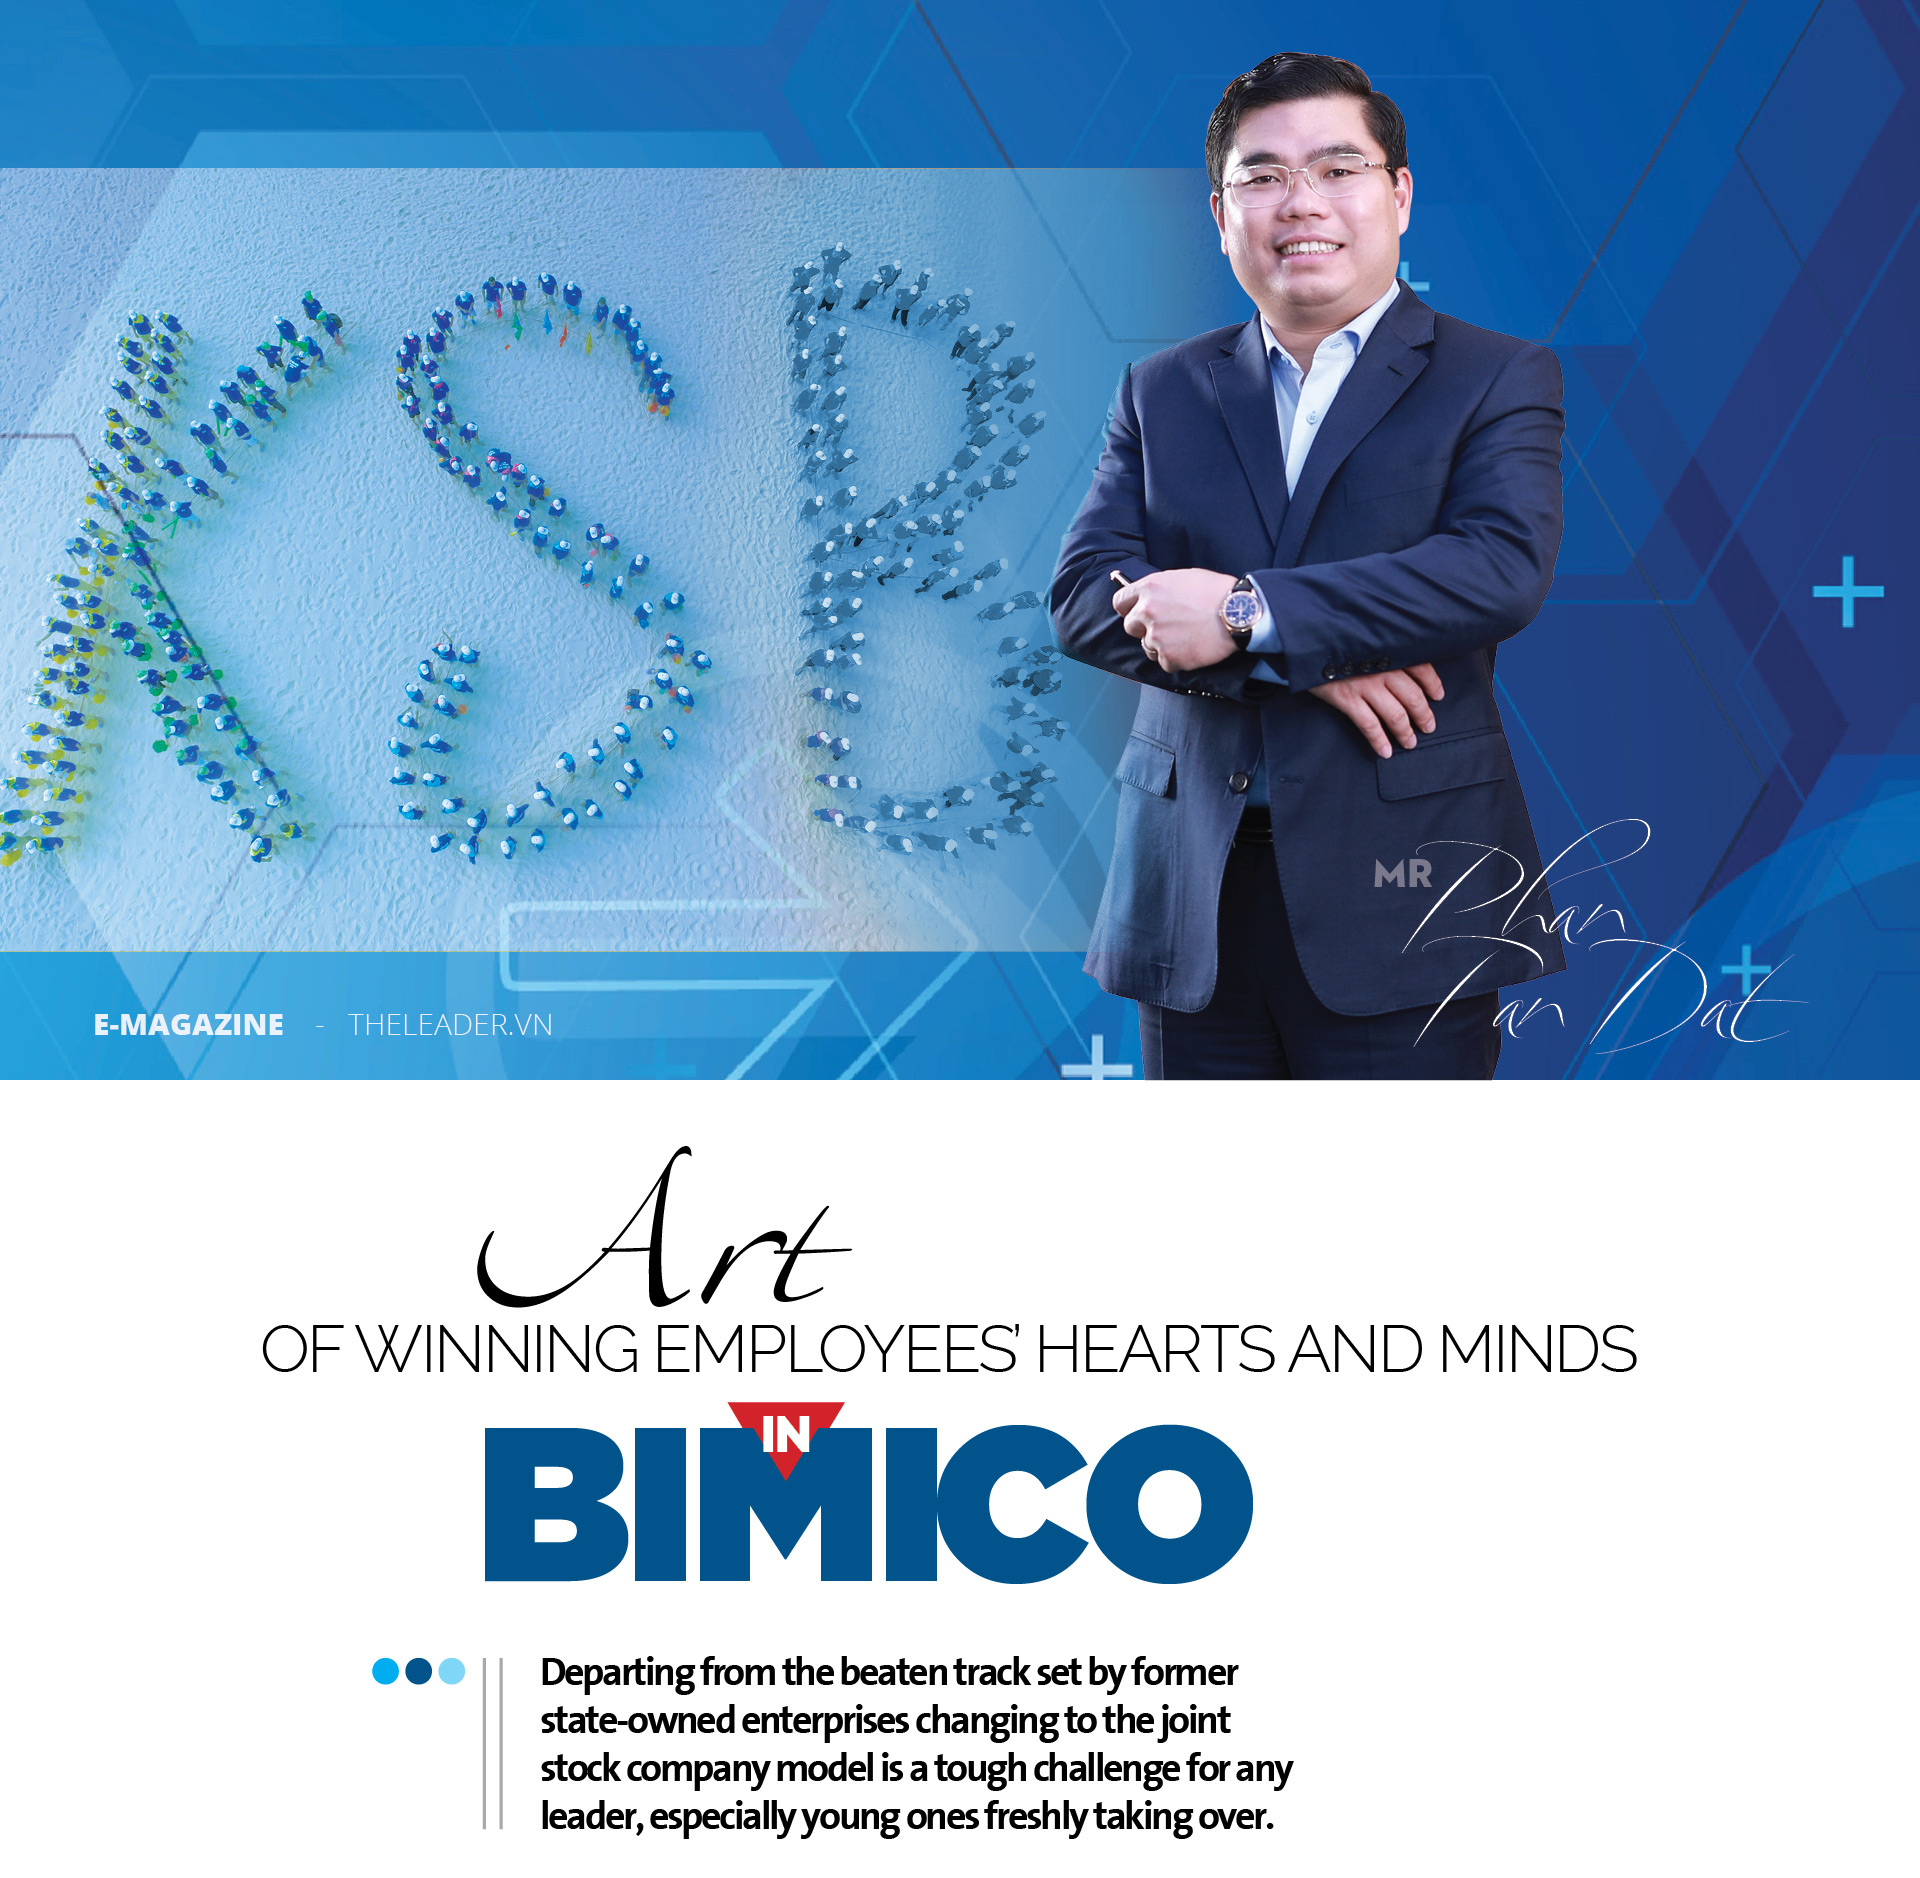 Art of winning employees' hearts and minds in BIMICO